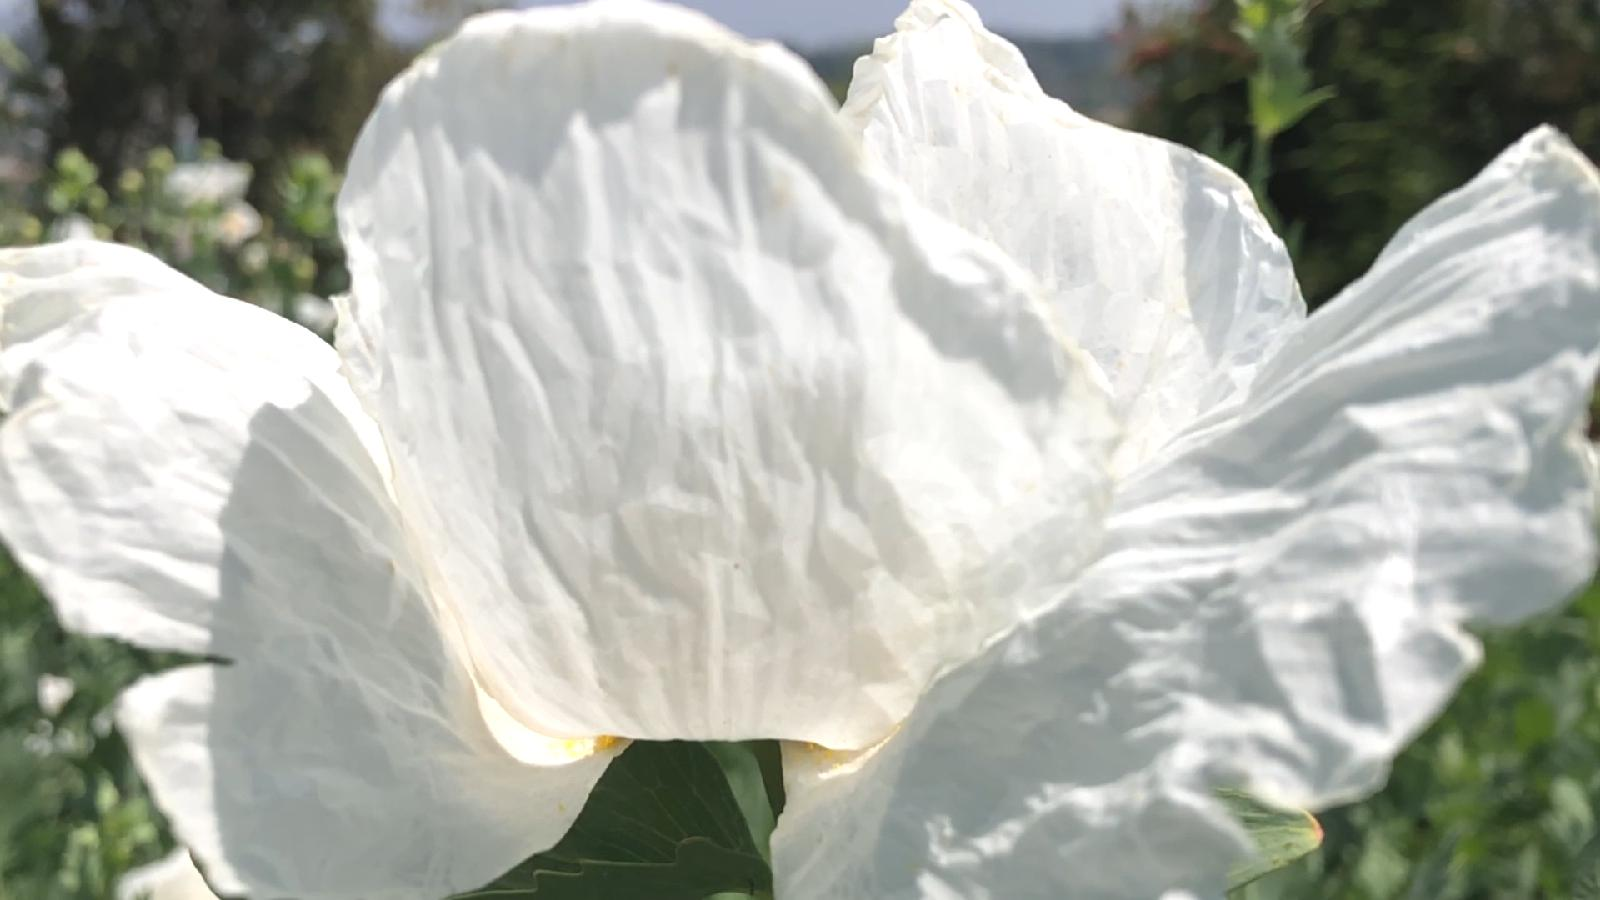 slide 1 - White Matilija Poppy Flower